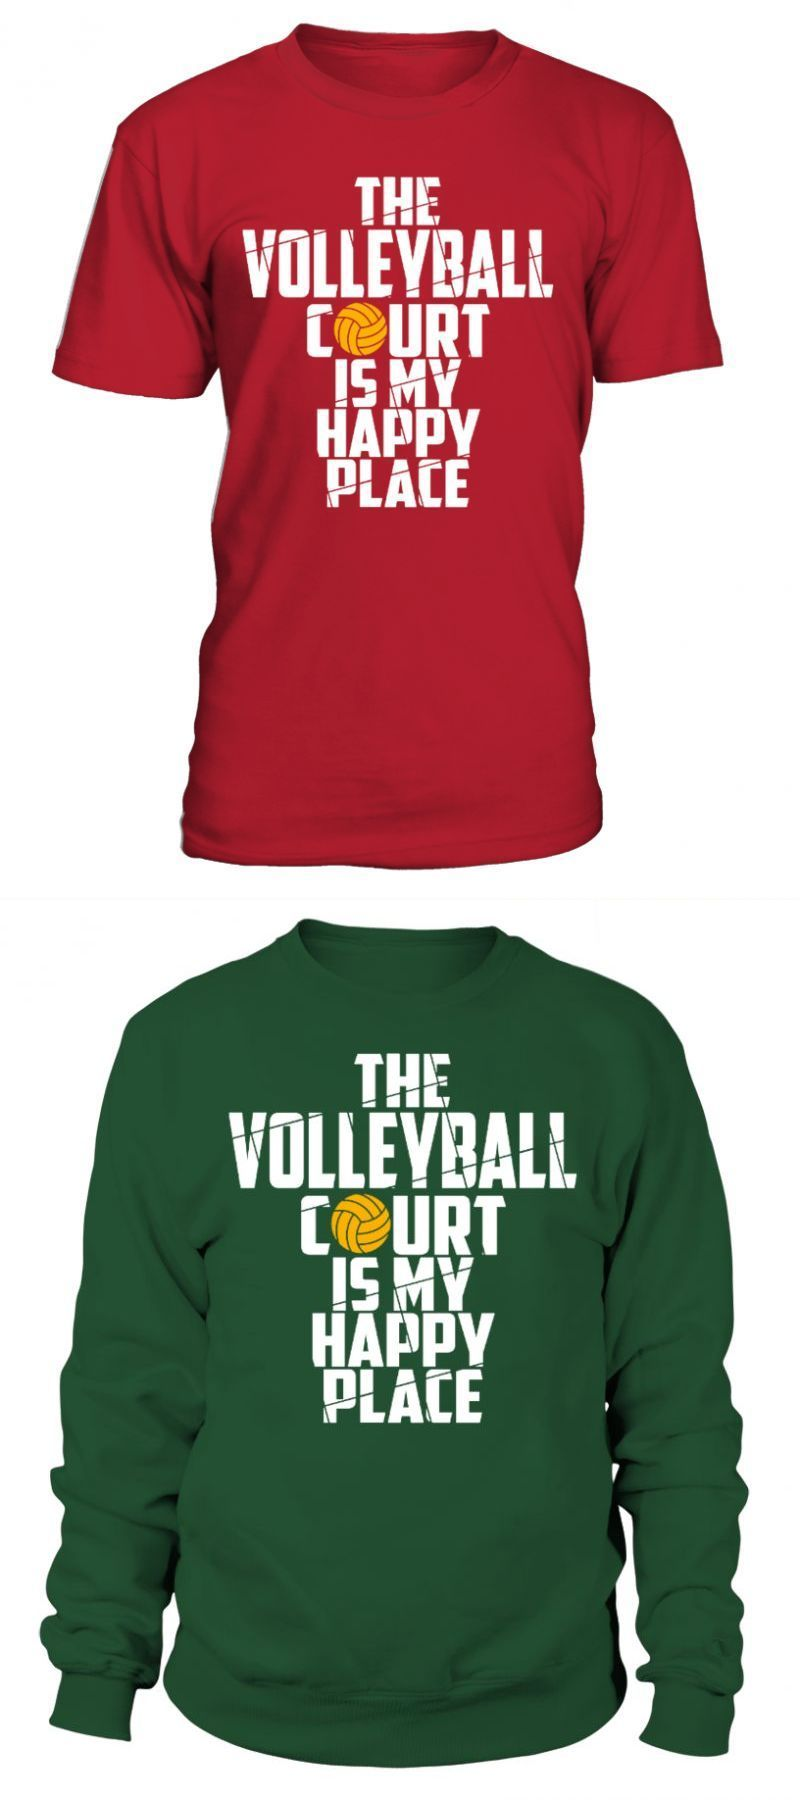 Volleyball Camp T Shirt Designs The Volleyball Court Is My Happy Place Erima T Shirt Volleyball Volleyball Camp Sh Shirt Designs Happy Places My Happy Place